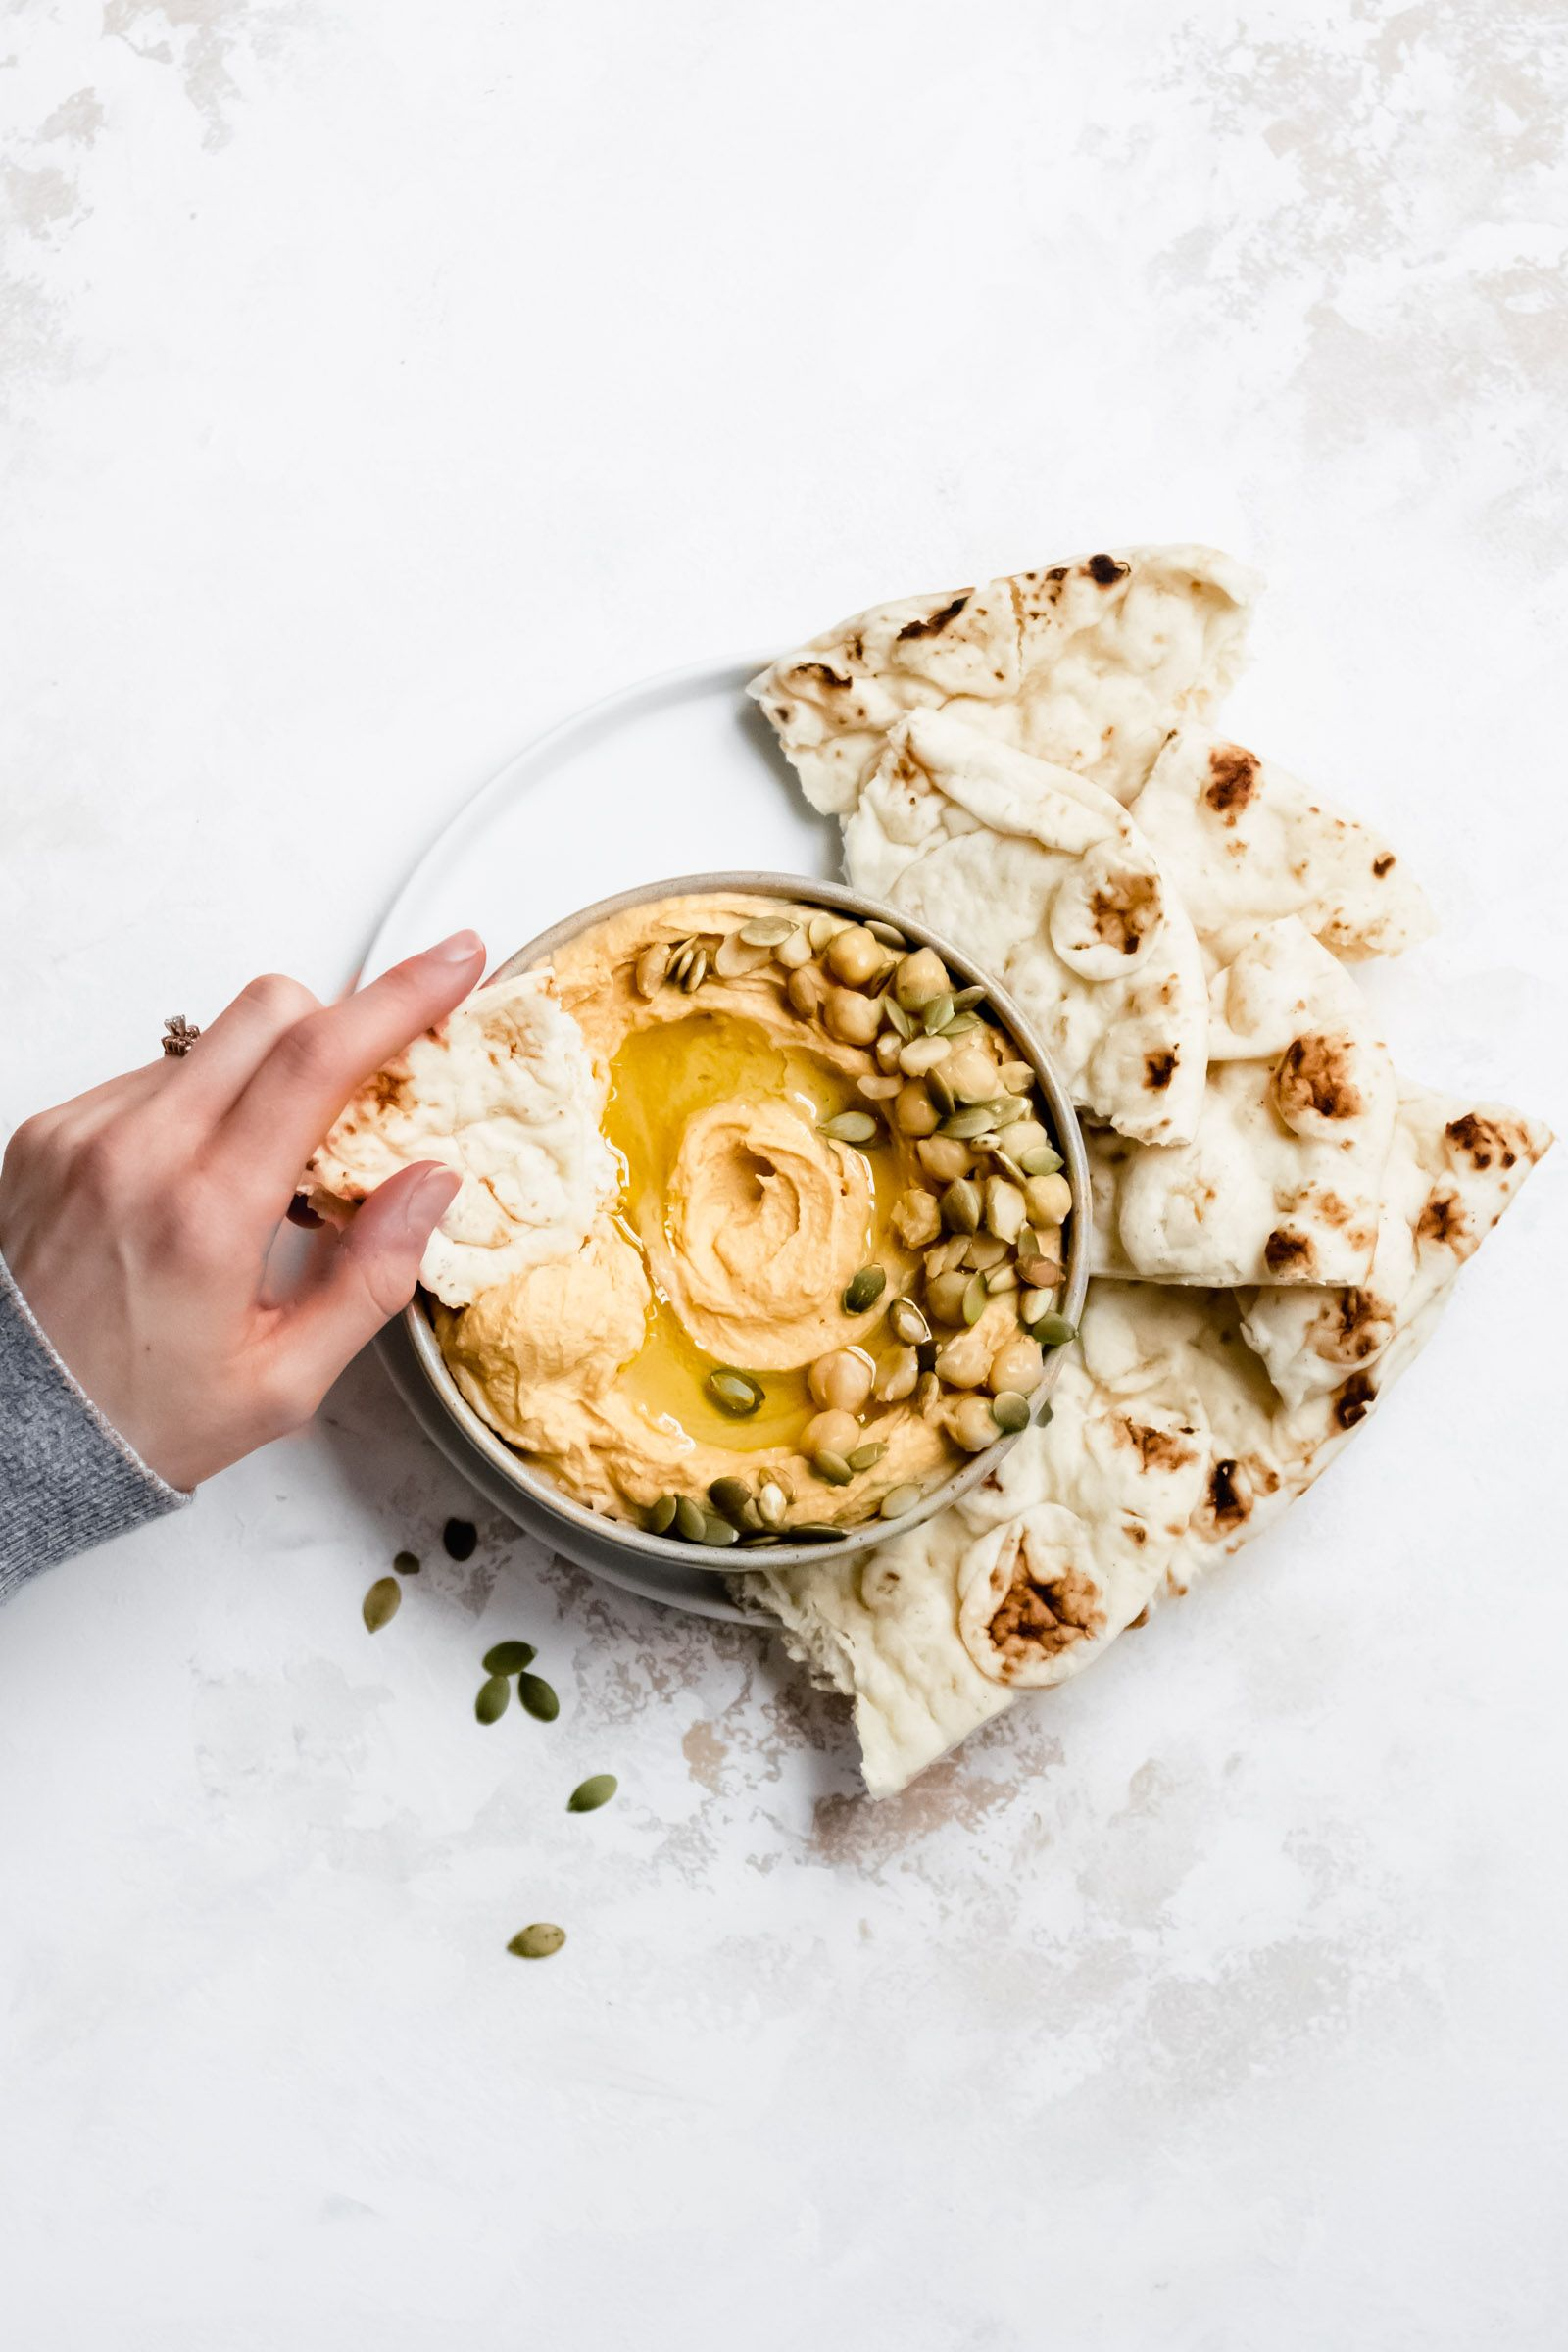 Creamy Roasted Butternut Squash Hummus Vegan GF  Well Fed Soul Roasted Butternut Squash Hummus is exceptionally creamy Youll love this fall inspired hummus made with roas...